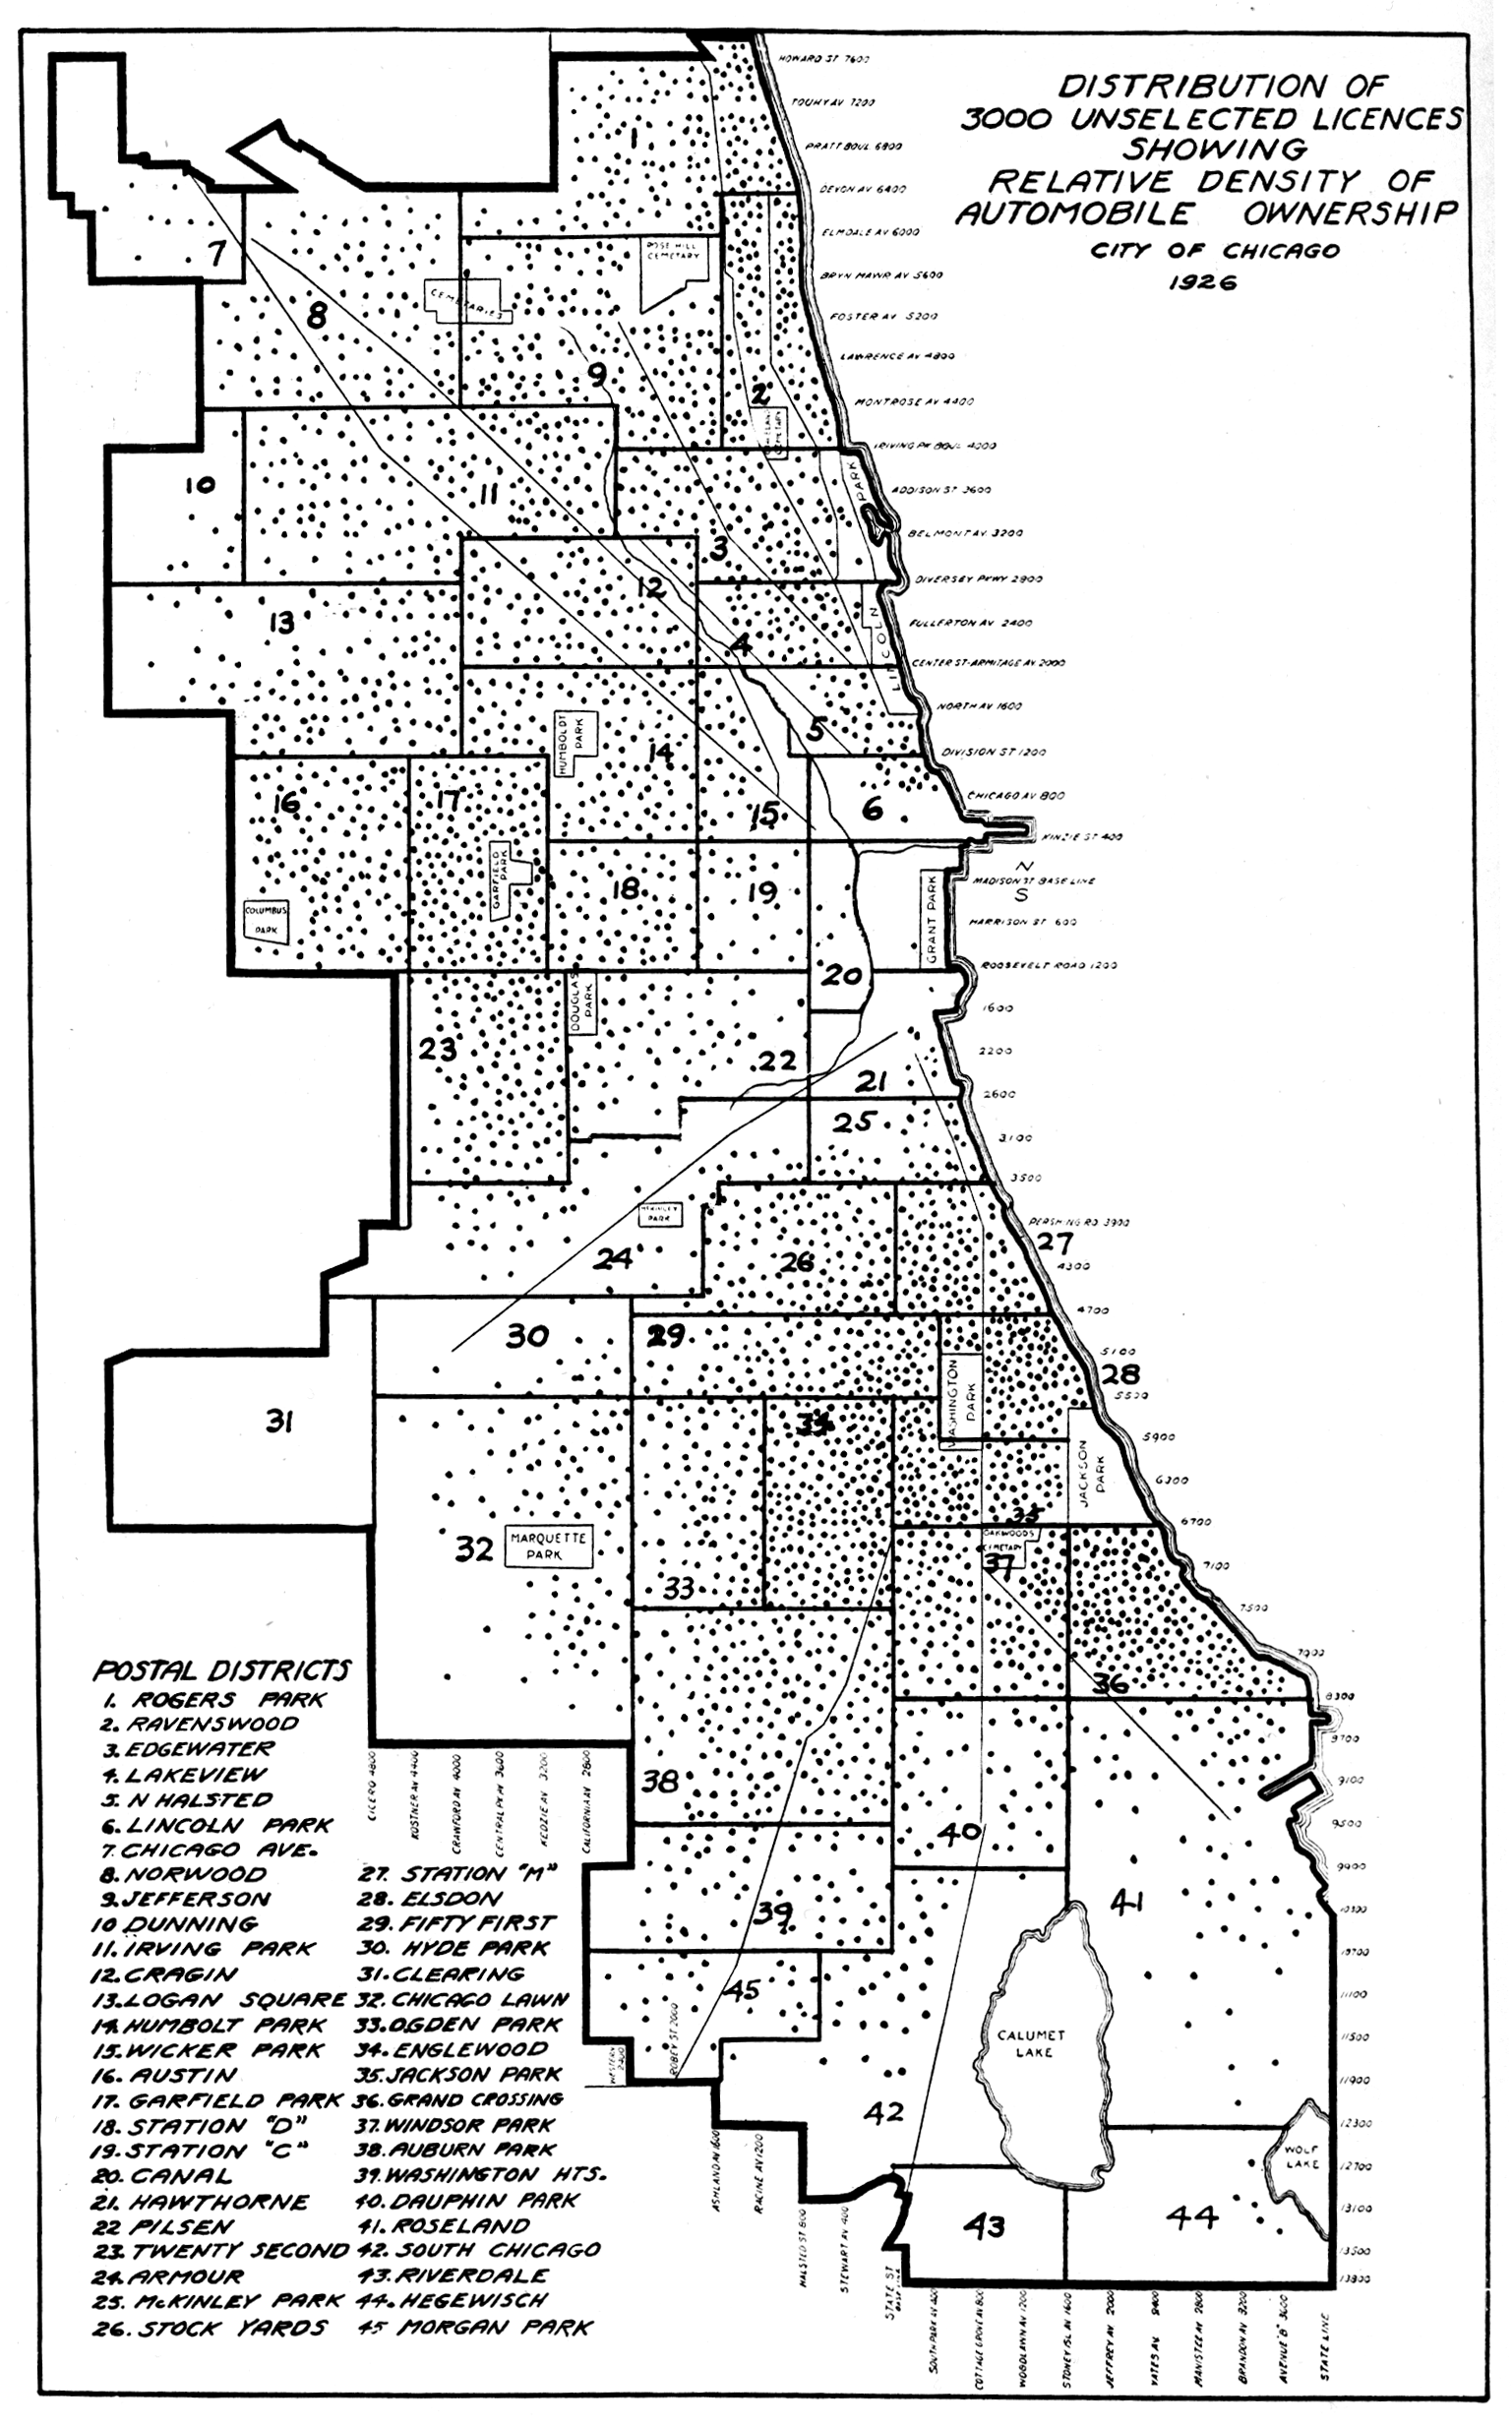 Chicago in Maps on cook county map, city mo map, city of san antonio sea world, northside chicago map, 21st ward map, chicago city street map, illinois map, city ny map, chicago city limits map, chicago neighborhood map, 1960s chicago map, city wi map, city md map, city of skyline, city nc map, downtown chicago map, city of arizona state, detailed chicago city map, distribution chicago map, california chicago map,